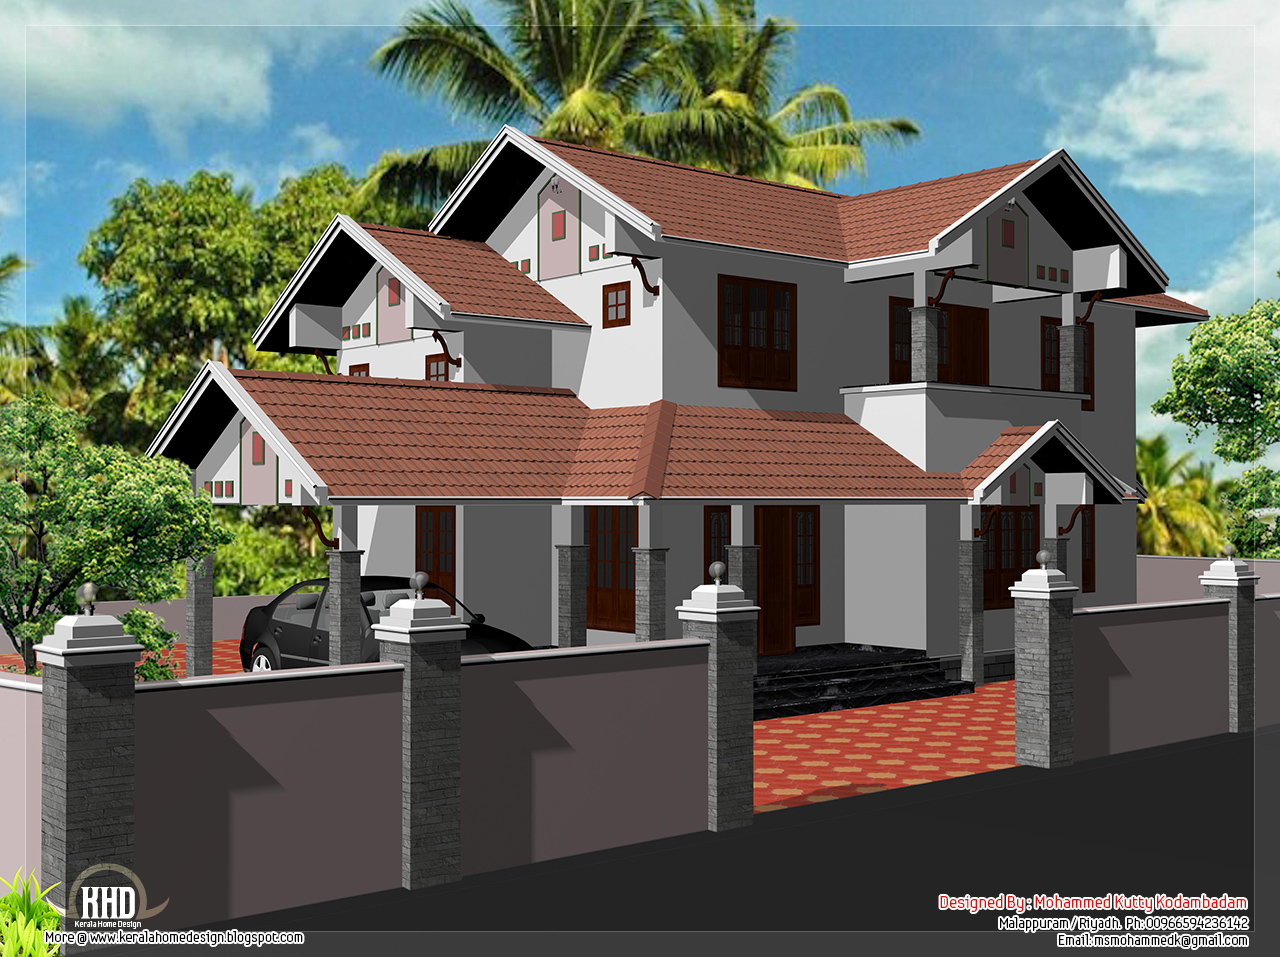 2000 house elevation design house design plans for Home plans under 2000 sq ft